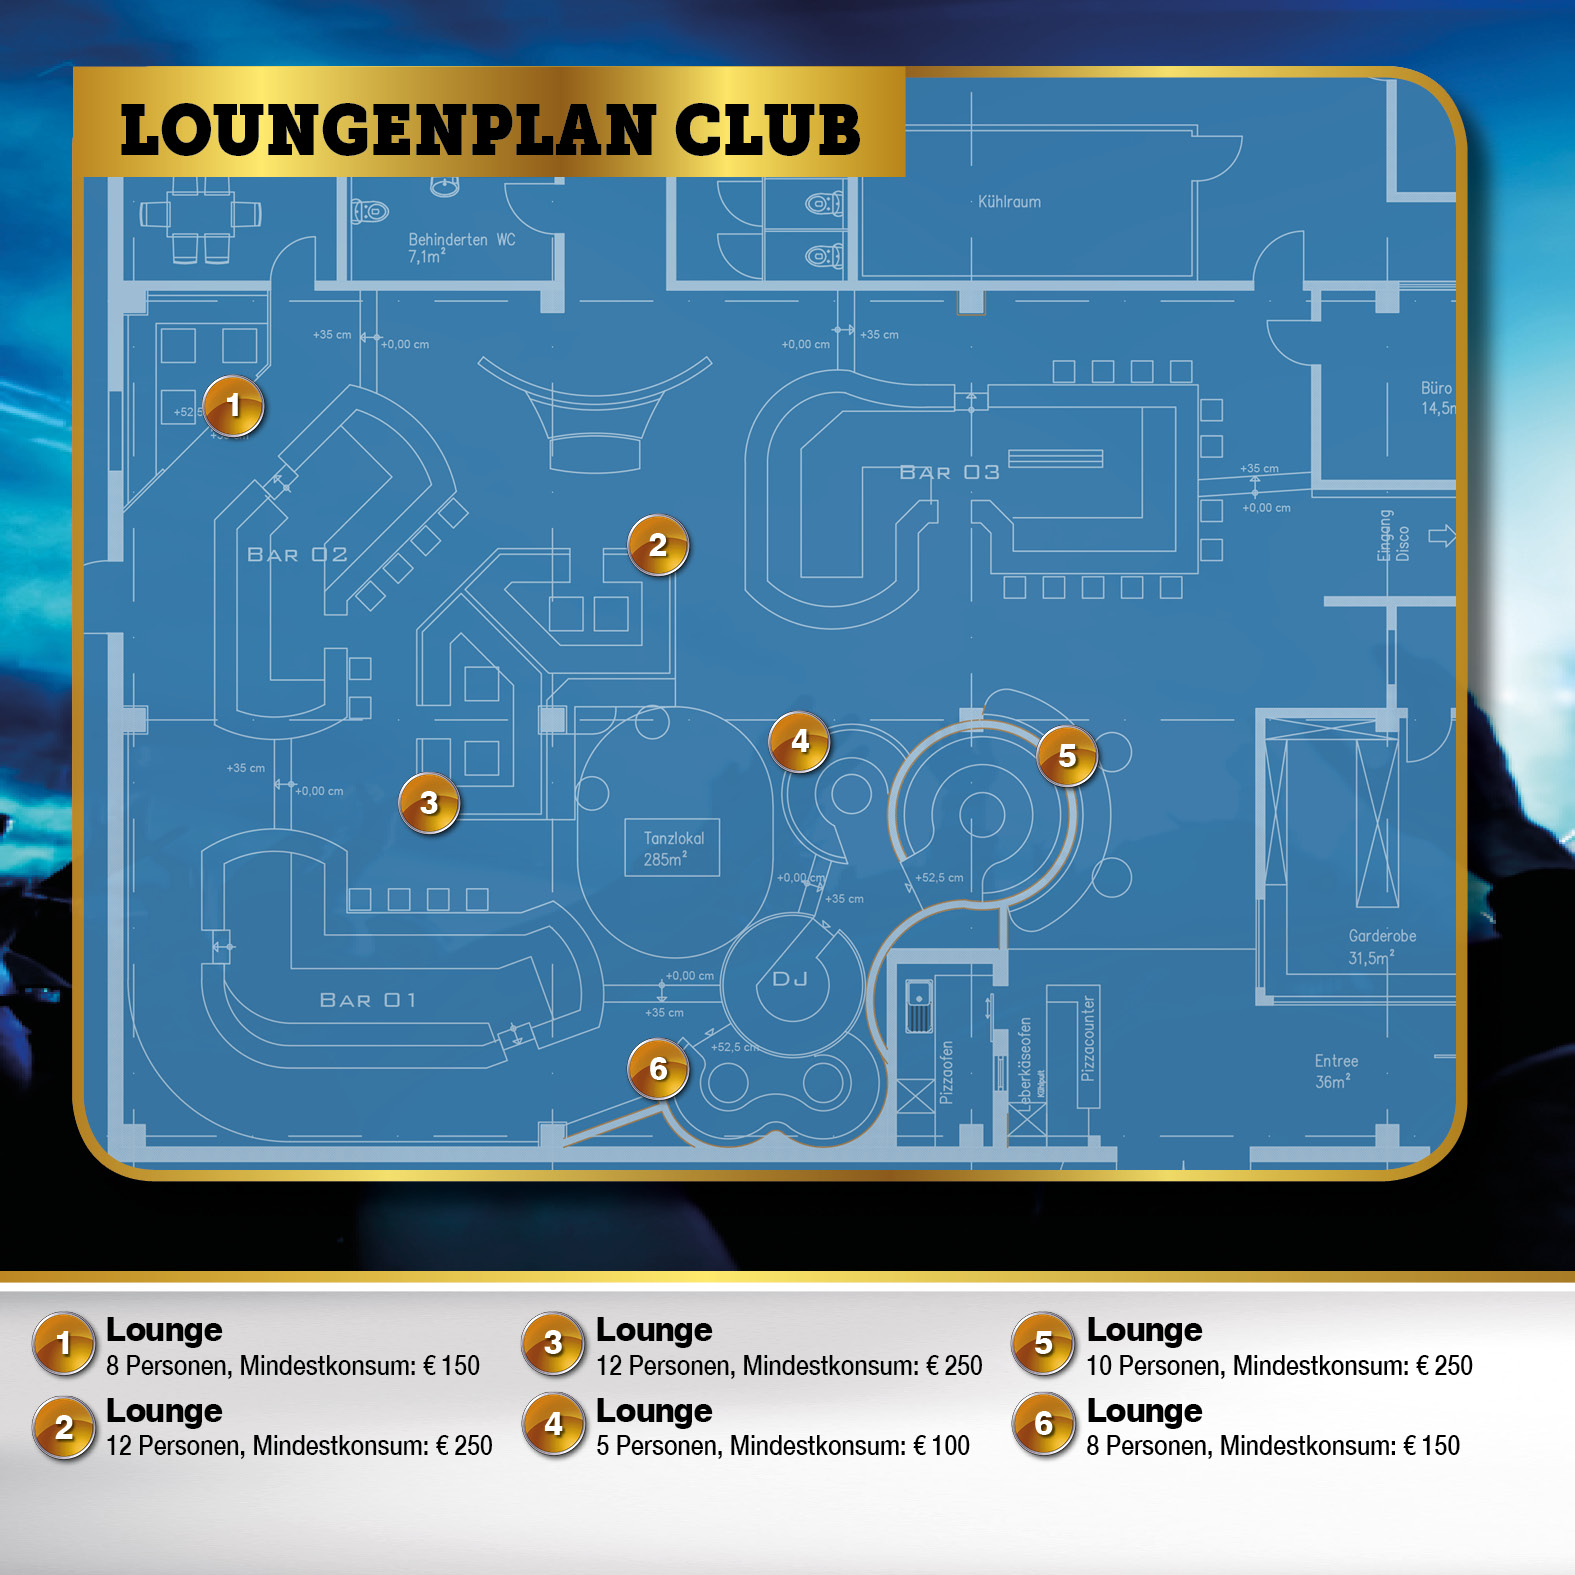 Loungenplan Lounge